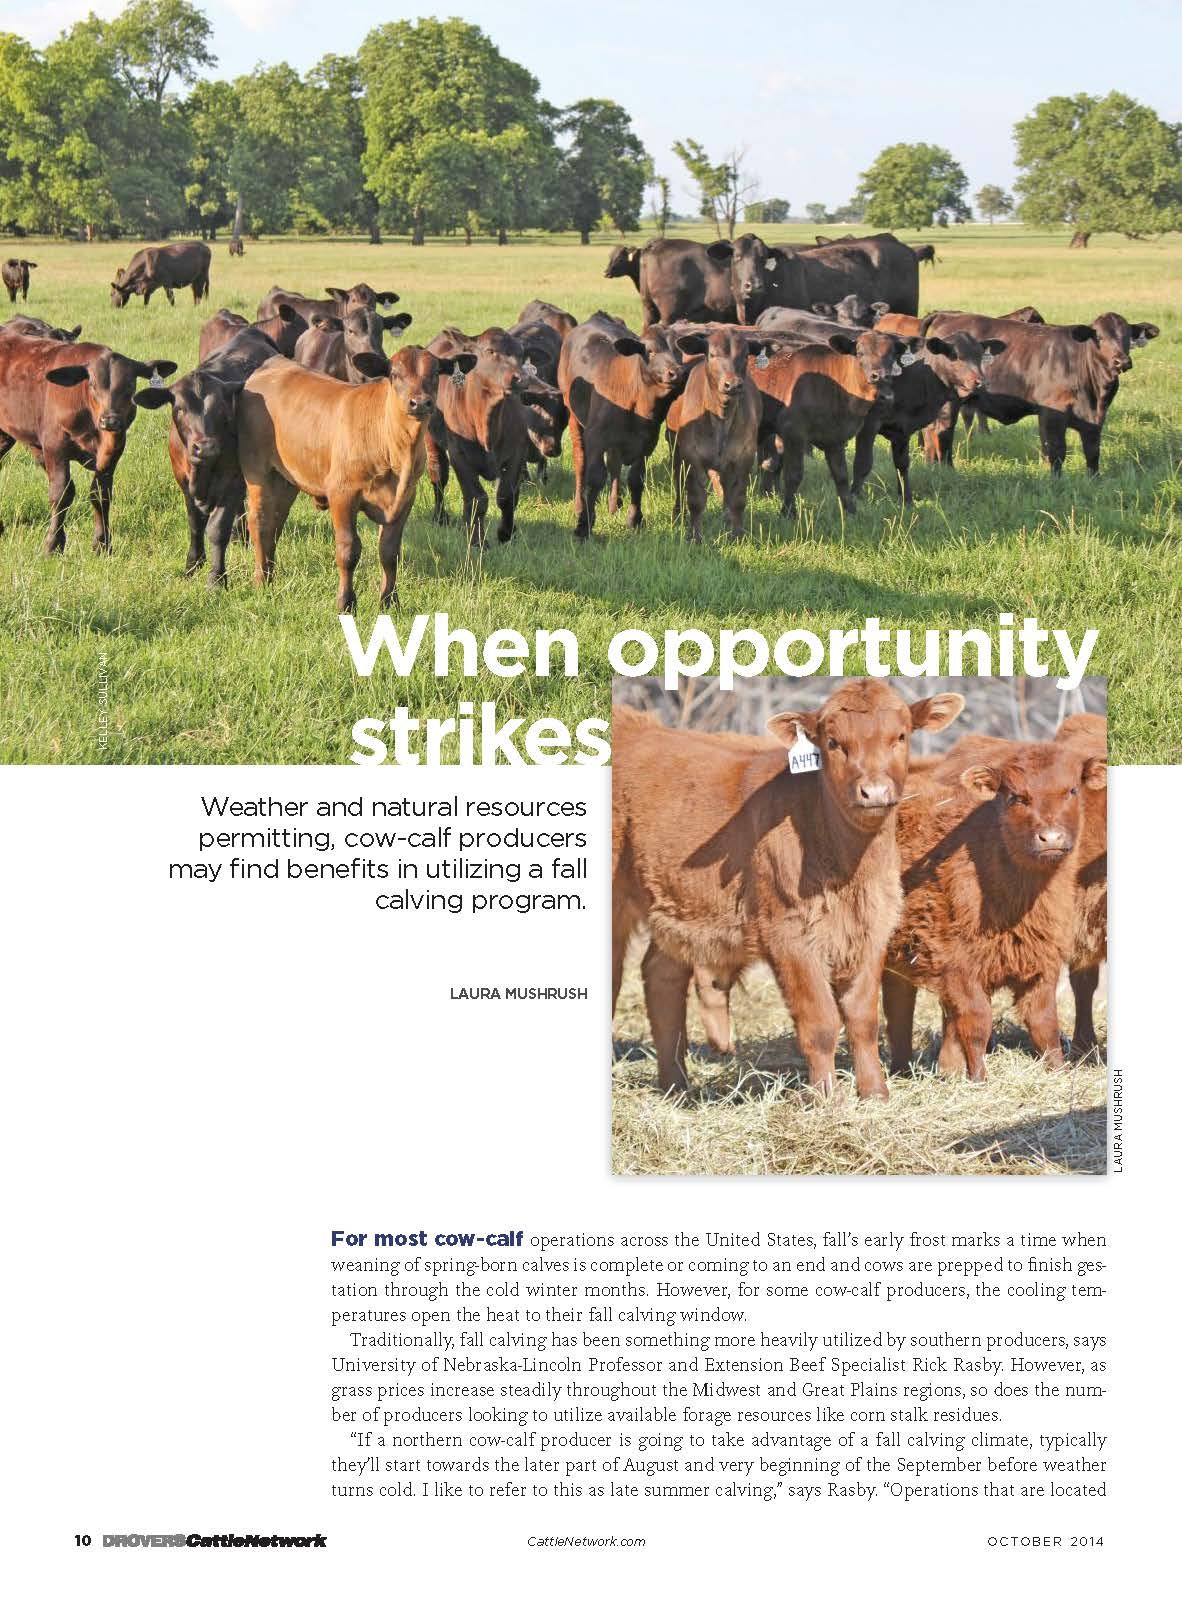 http://www.cattlenetwork.com/cattle-news/Fall-calving-when-the-opportunity-strikes--280635802.html?llsms=1028842&c=y